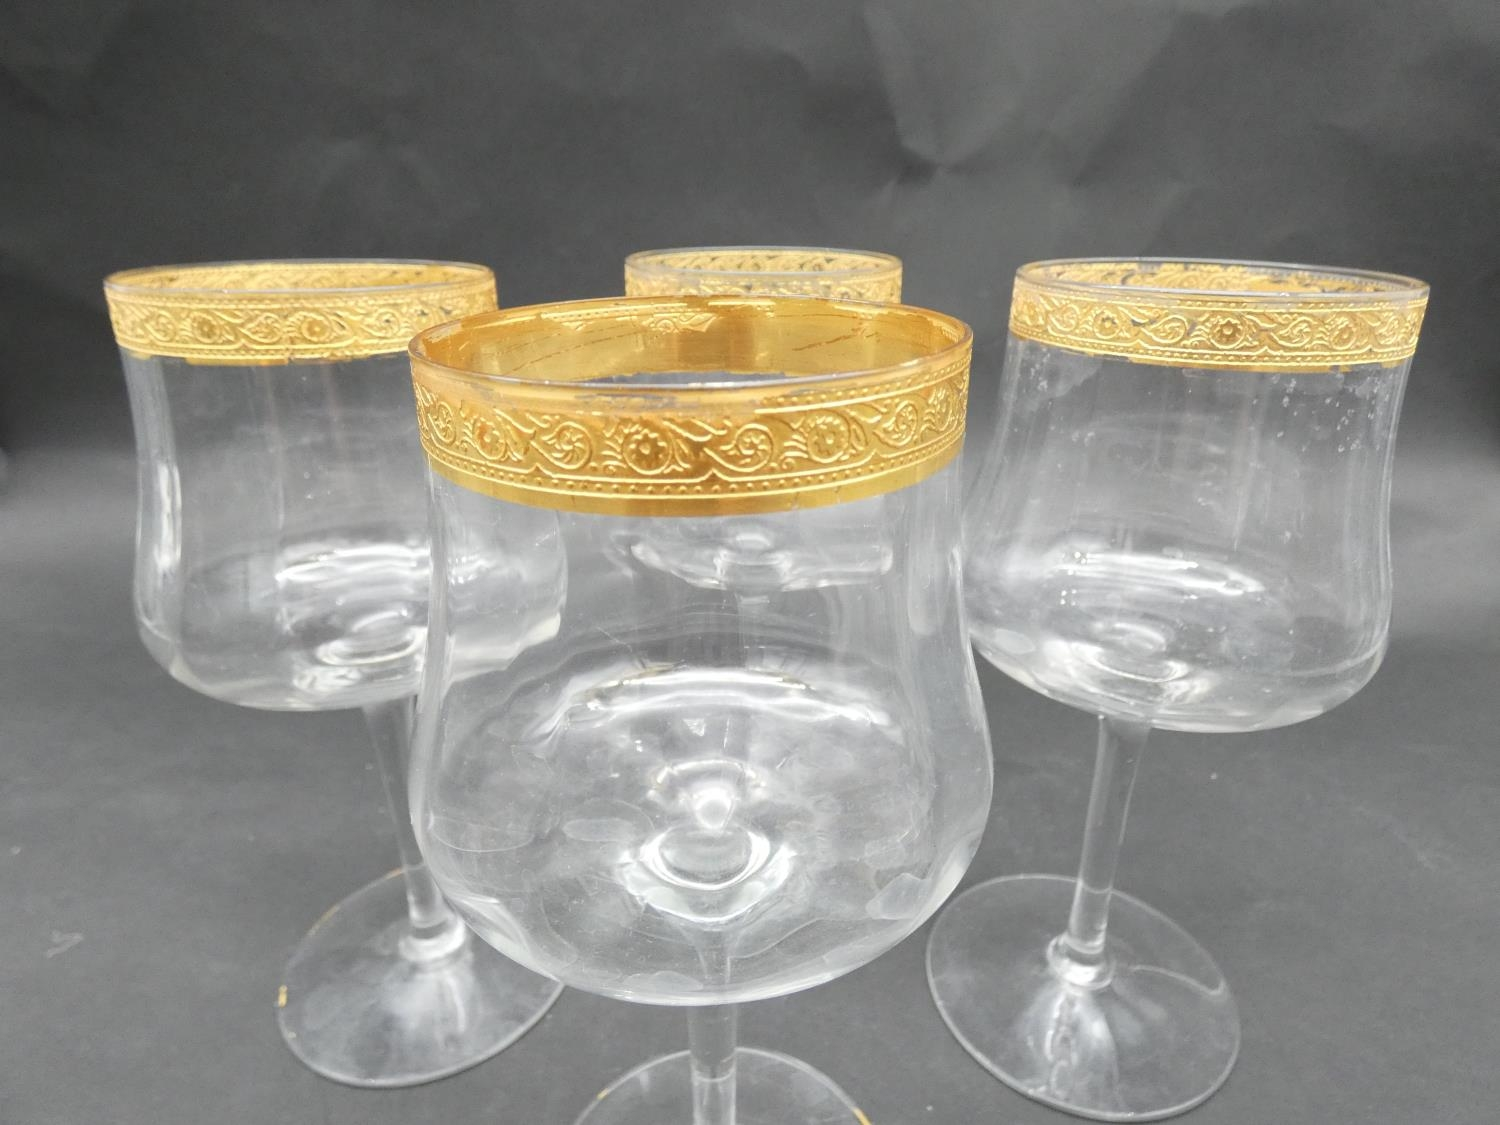 A collection of glasses. Including a set of five sherry glasses with gilded Orion symbols, along - Image 14 of 14